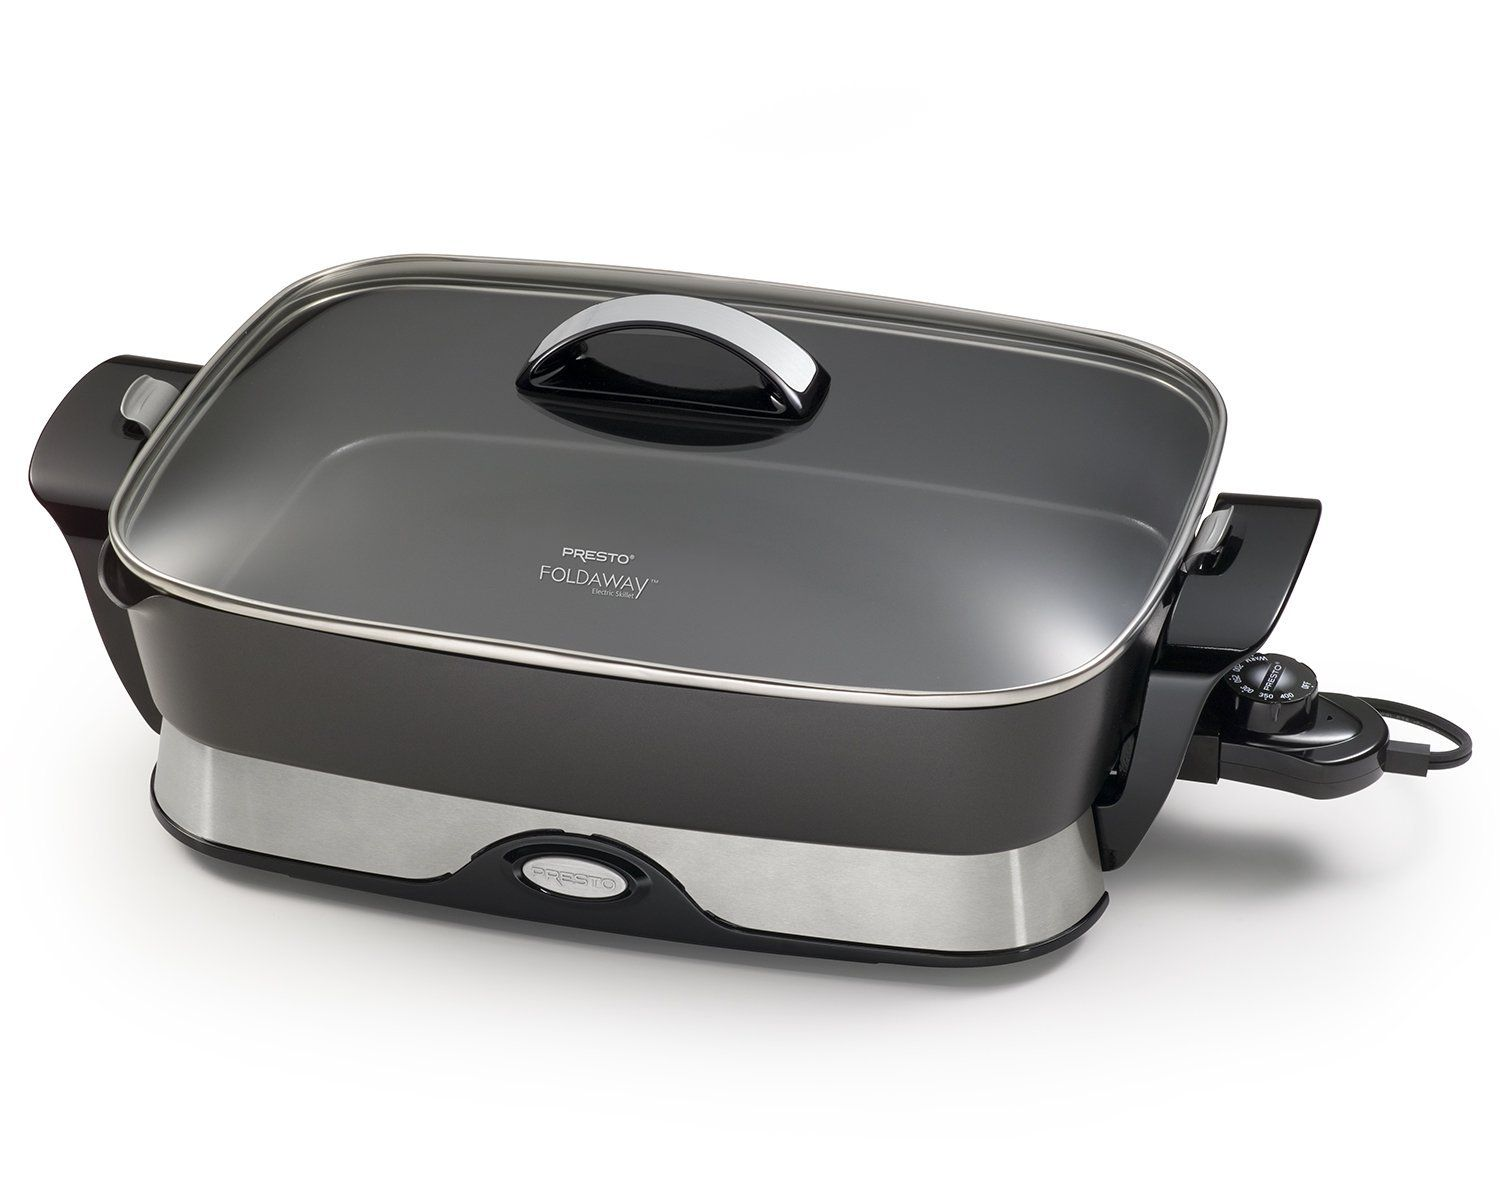 """Amazon.com: Presto 06857 16-inch Electric Foldaway Skillet, Black: Home & Kitchen. Considering purchasing either this or the 12-inch. The 16"""" is approximately 20x16, while the 12"""" is approximately 16x12.5. At present, the 12"""" only comes in burgundy at Amazon.com. Your feedback will be much appreciated, fellow pinners. Yes, I mean you!"""